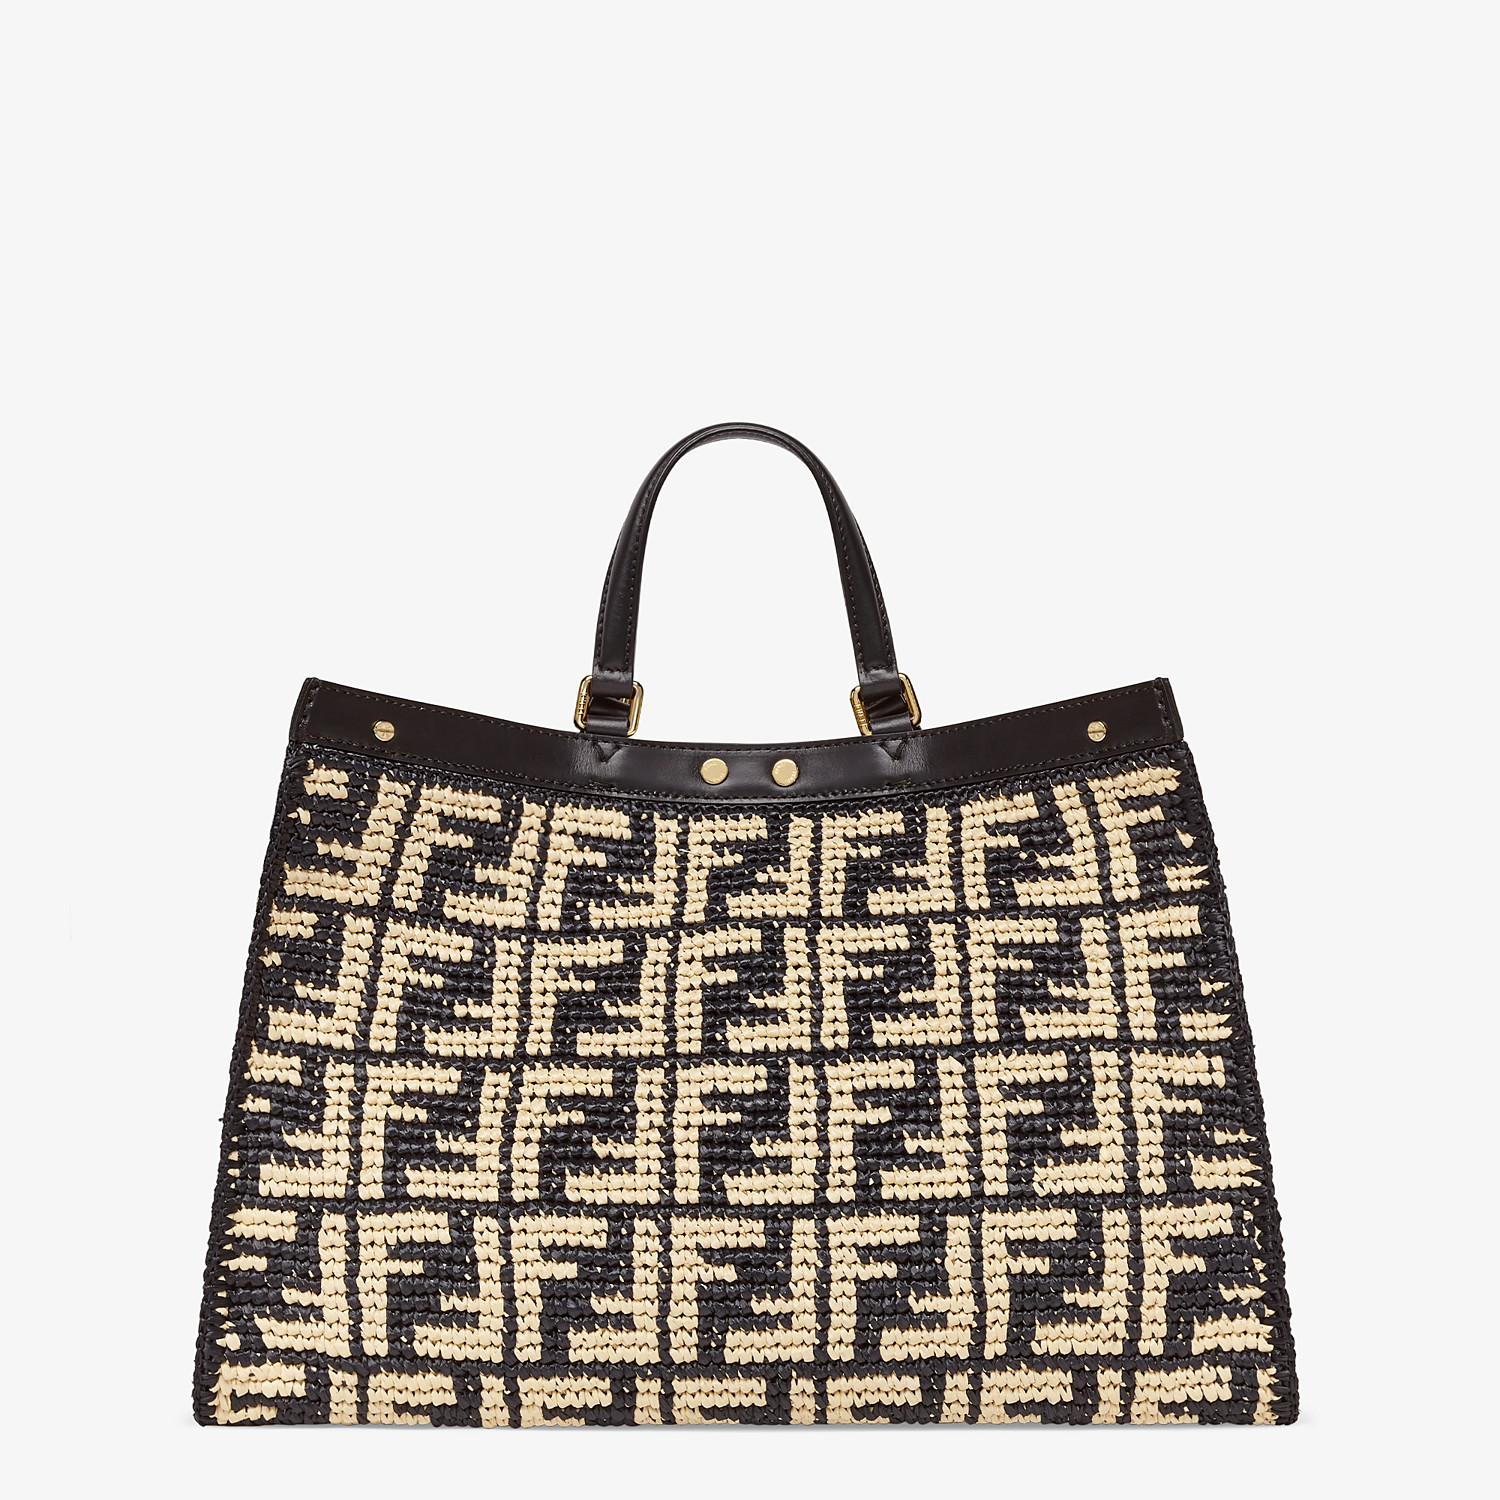 FENDI PEEKABOO X-TOTE - Black FF raffia bag - view 4 detail